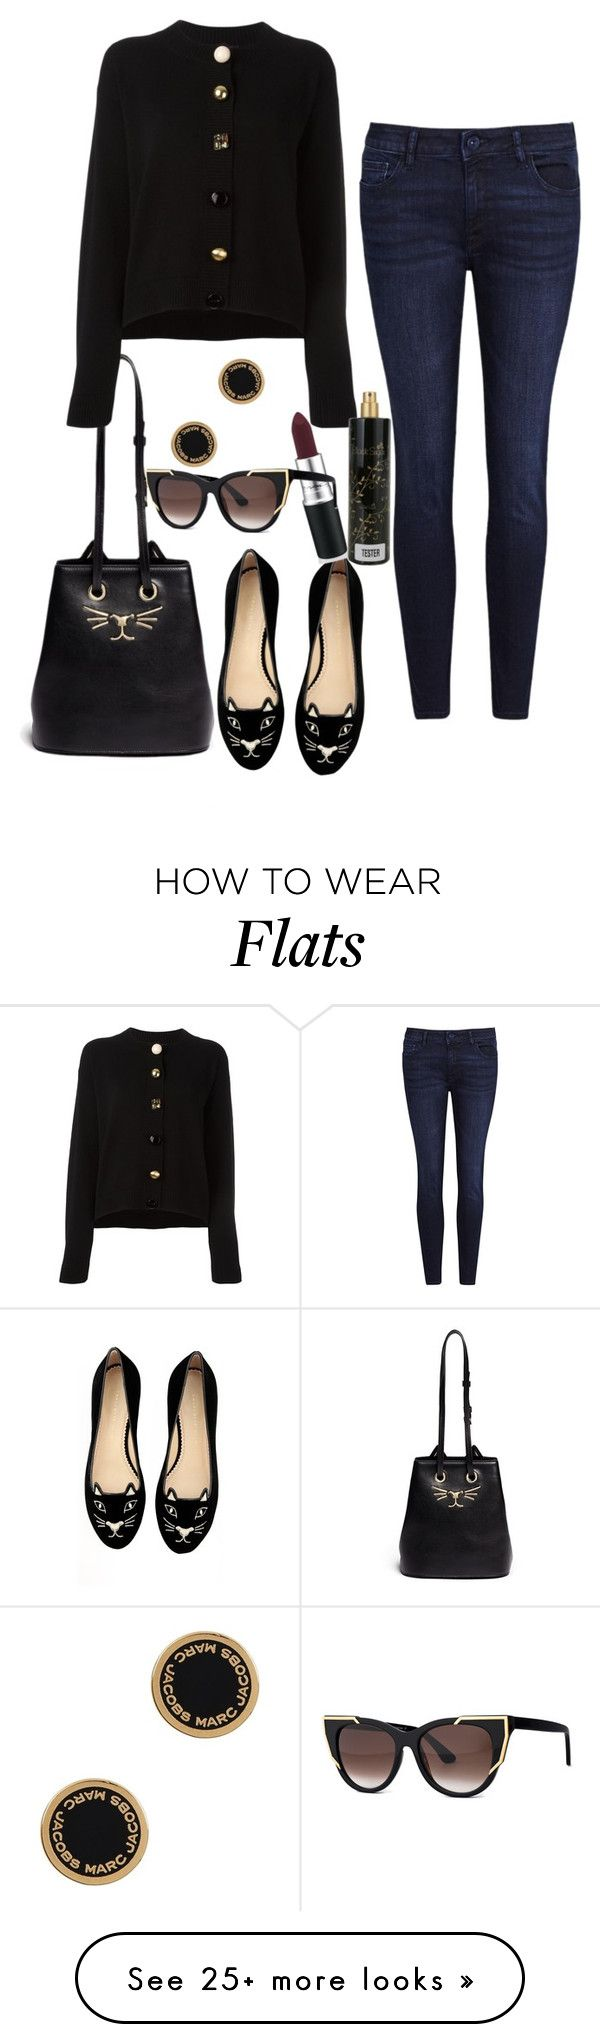 """""""Charlotte Olympia kitty flats and bag"""" by ms-hinds on Polyvore featuring Charlotte Olympia, DL1961 Premium Denim, Dolce&Gabbana, Marc Jacobs, Nasty Gal, Thierry Lasry and Aquolina"""